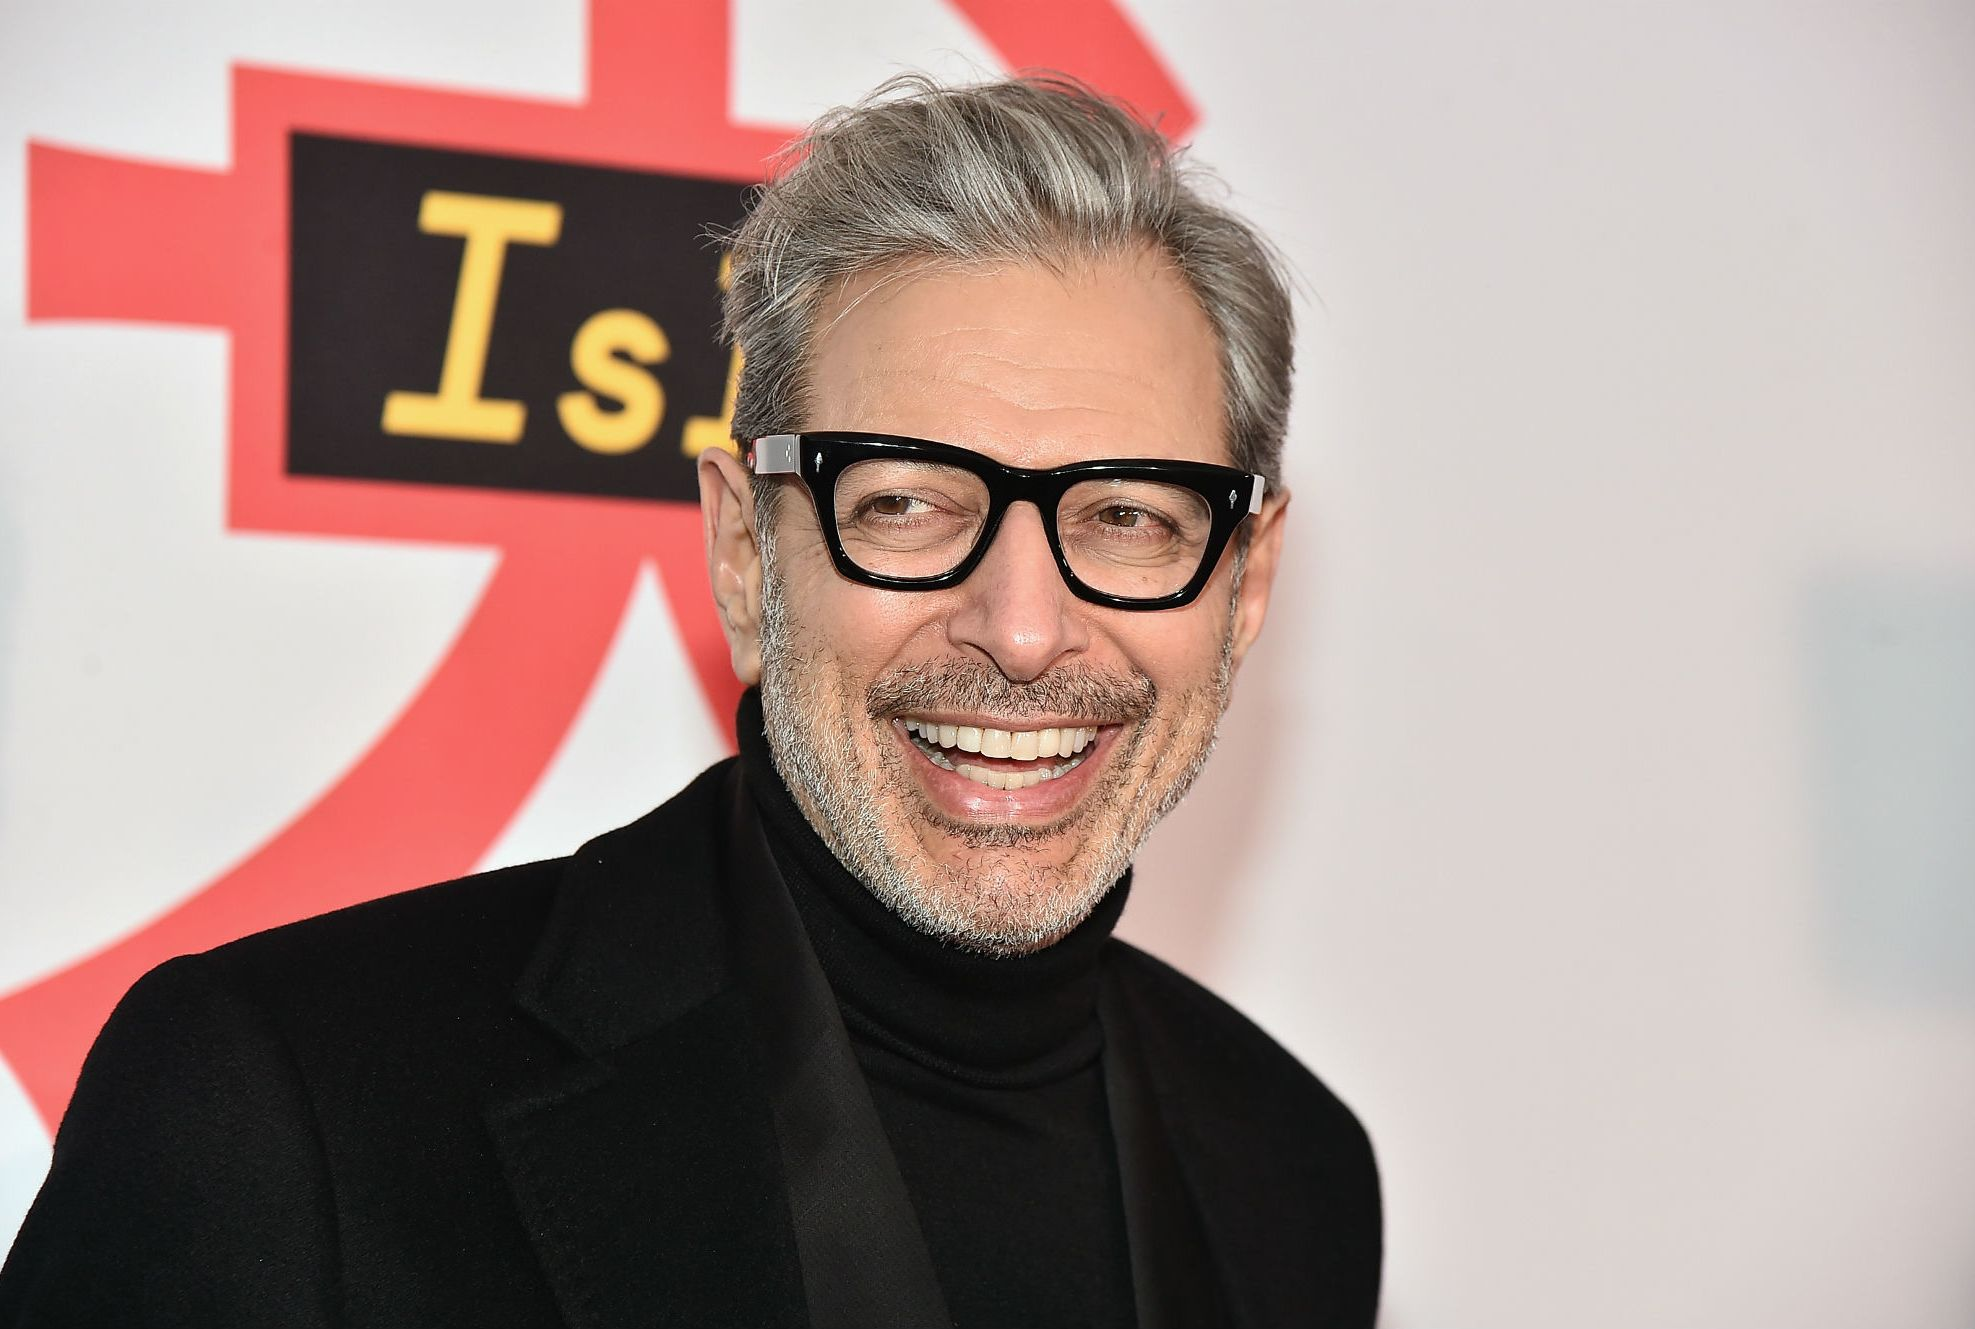 10 Things You Might Not Know About Jeff Goldblum Mental Floss